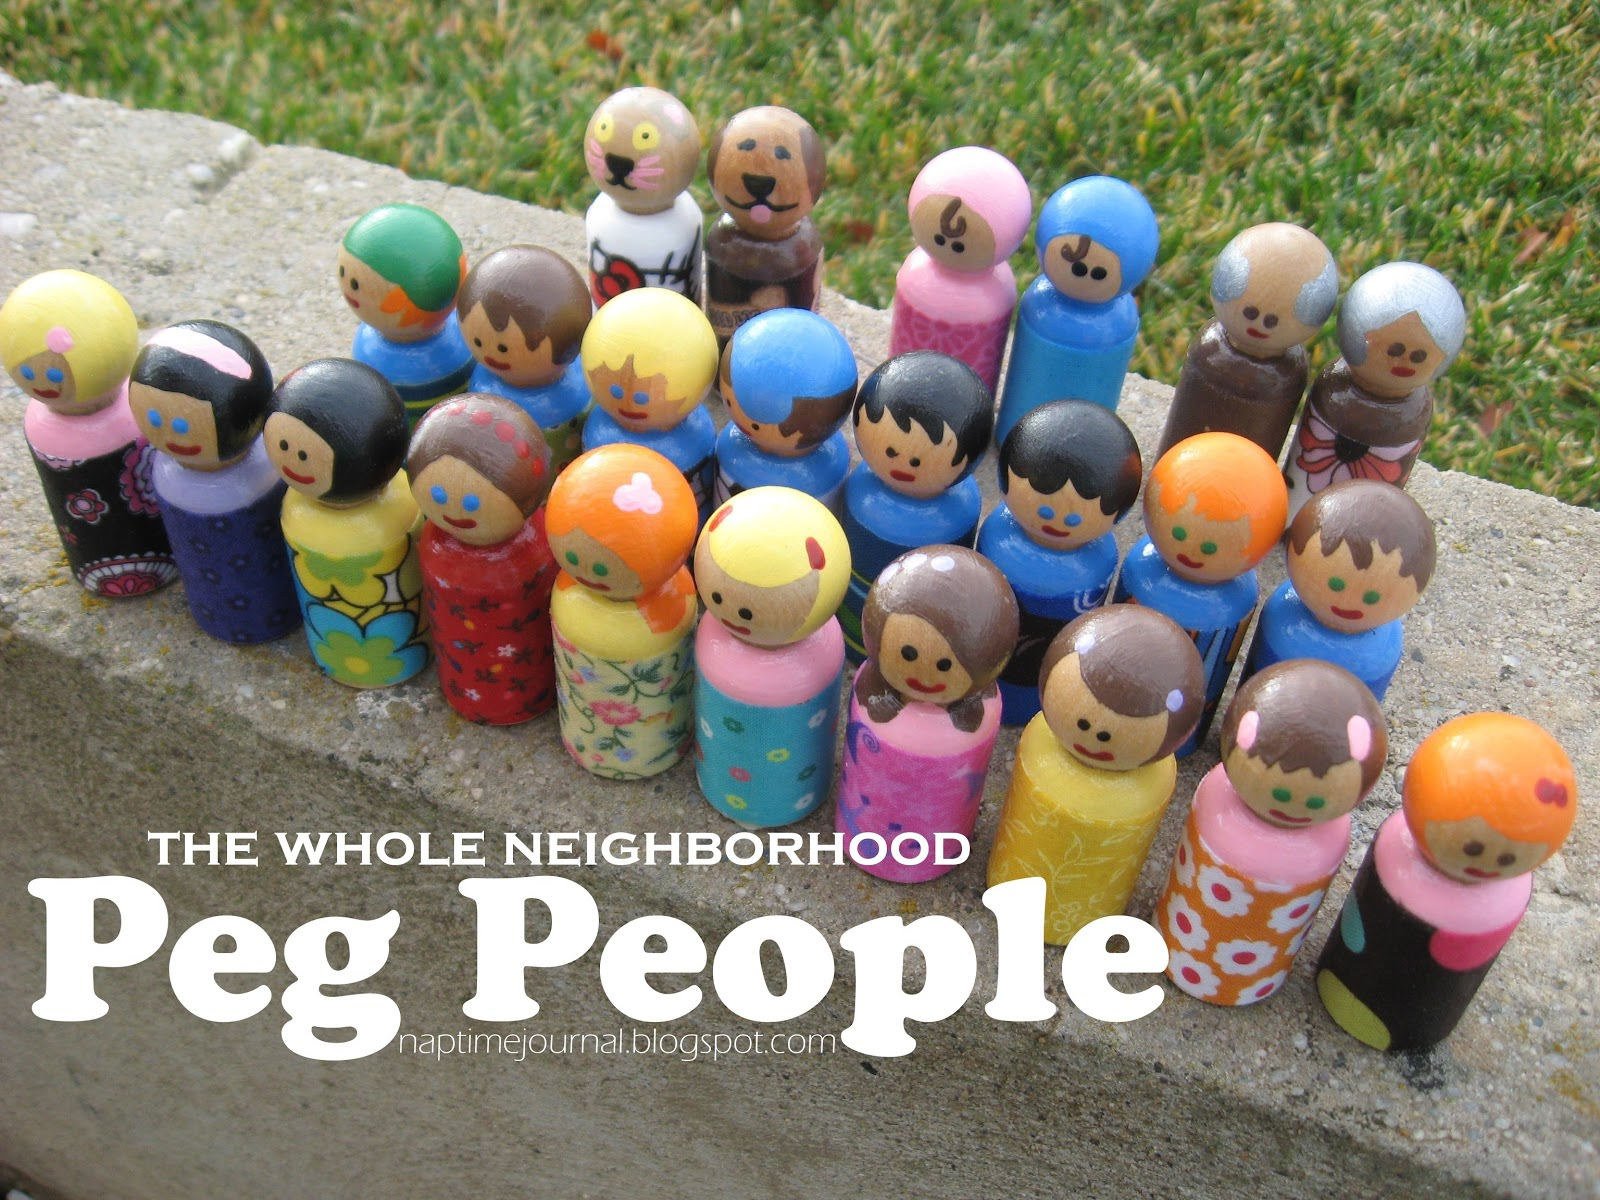 Nap Time Journal A Neighborhood of PEG PEOPLE A Homemade Christmas